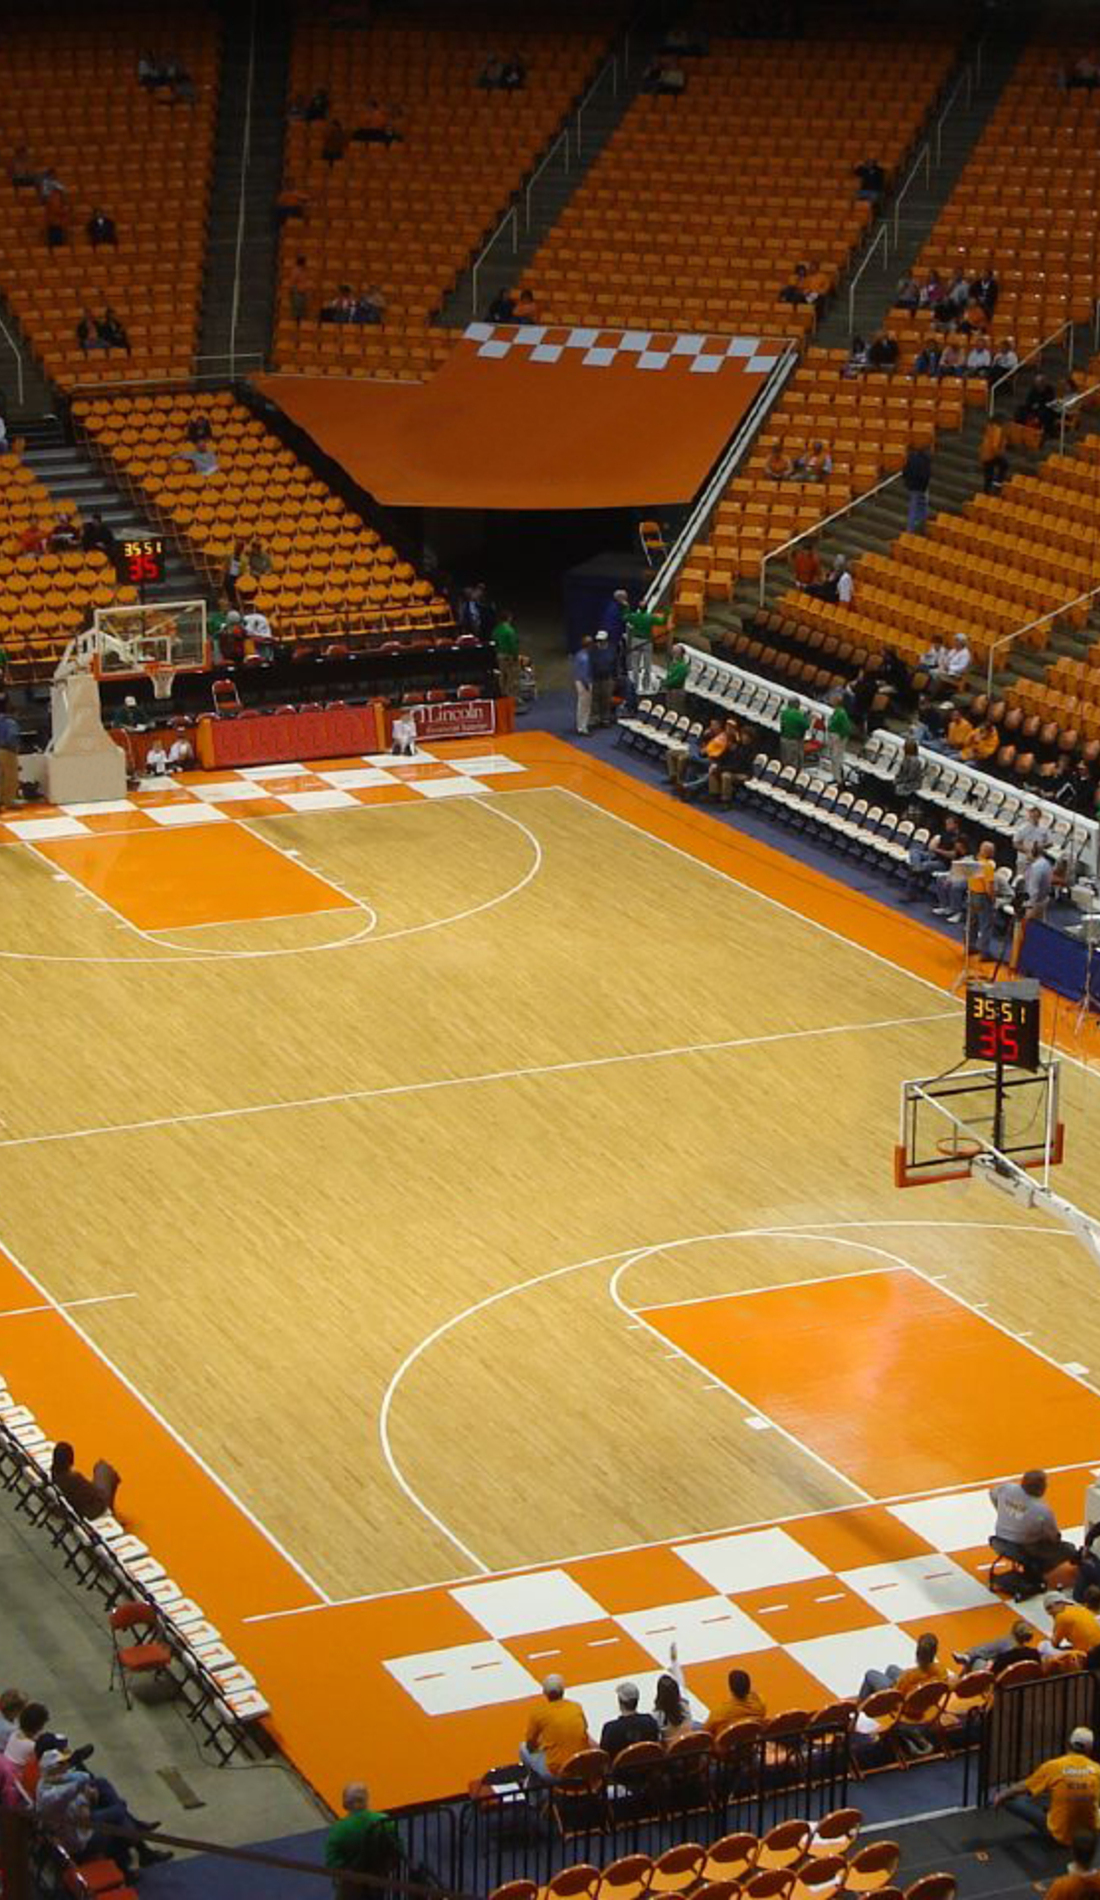 A Tennessee Volunteers Basketball live event